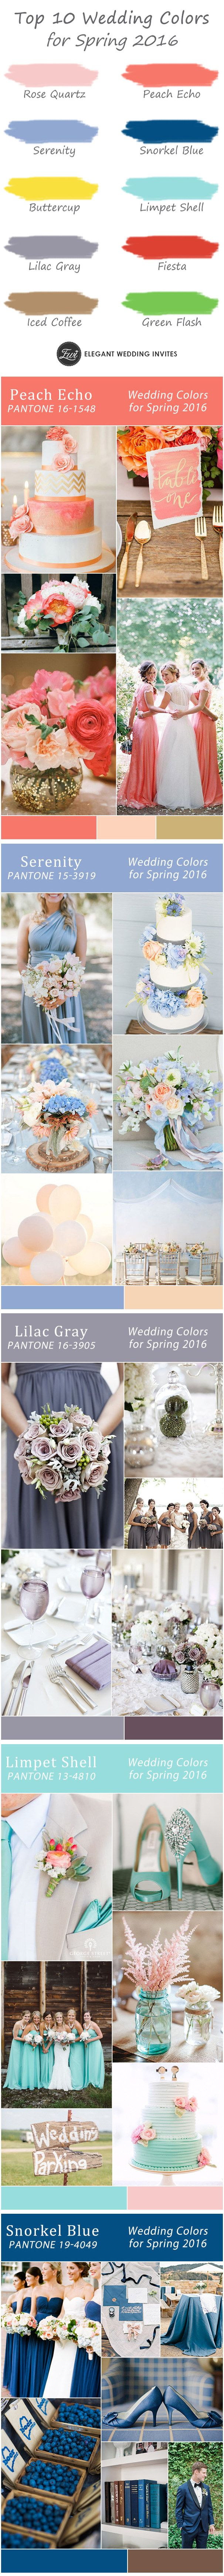 top 10 wedding colors for spring 2016 trends-coral, peach, blue, lilac gray and more wedding color ideas